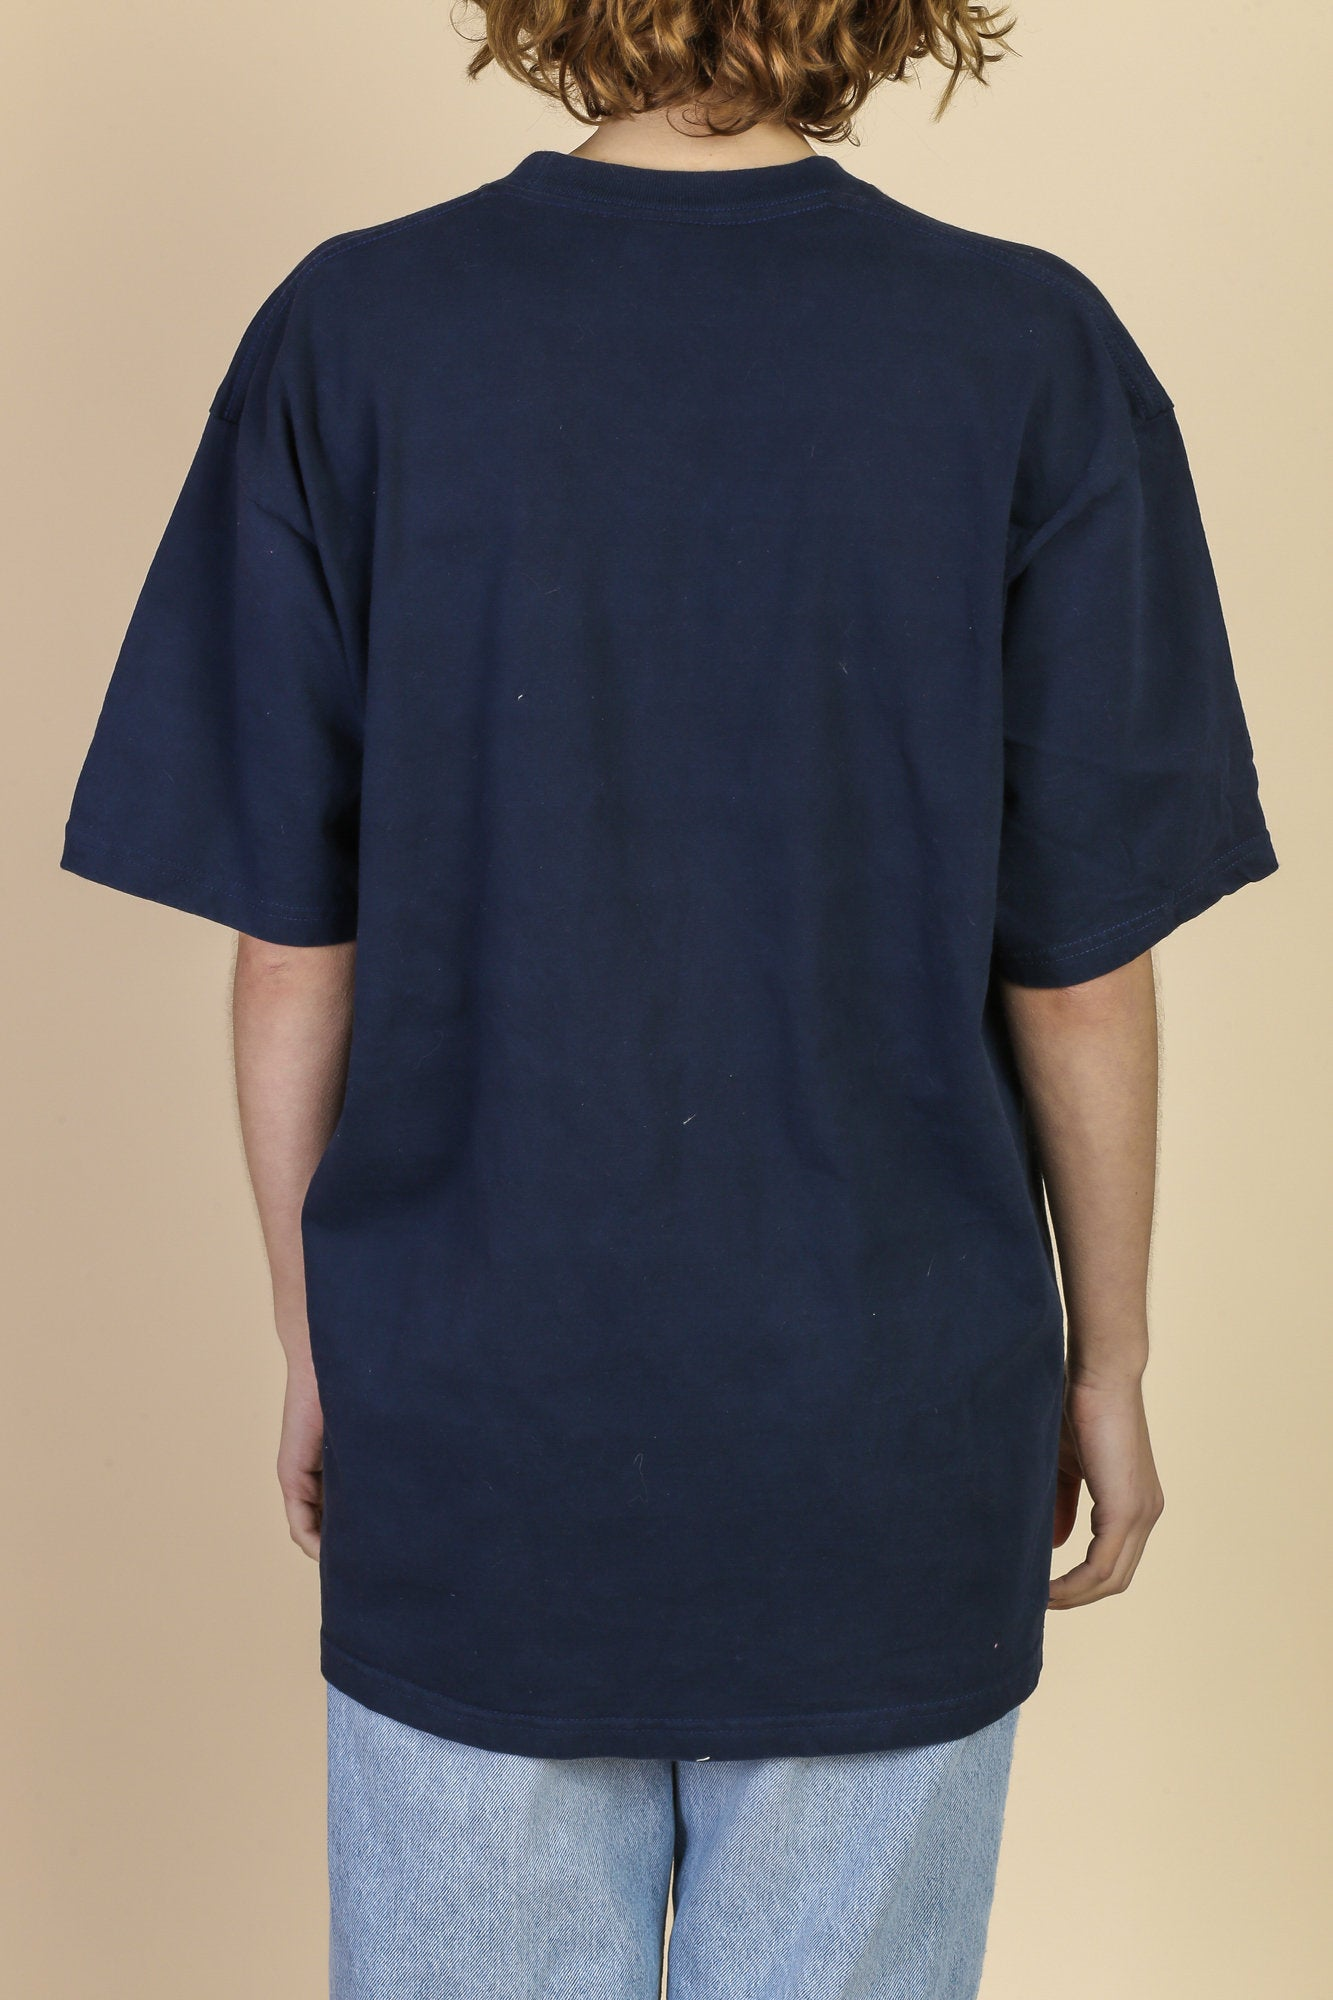 90s Oversized Navy Blue T Shirt - Men's Extra Large